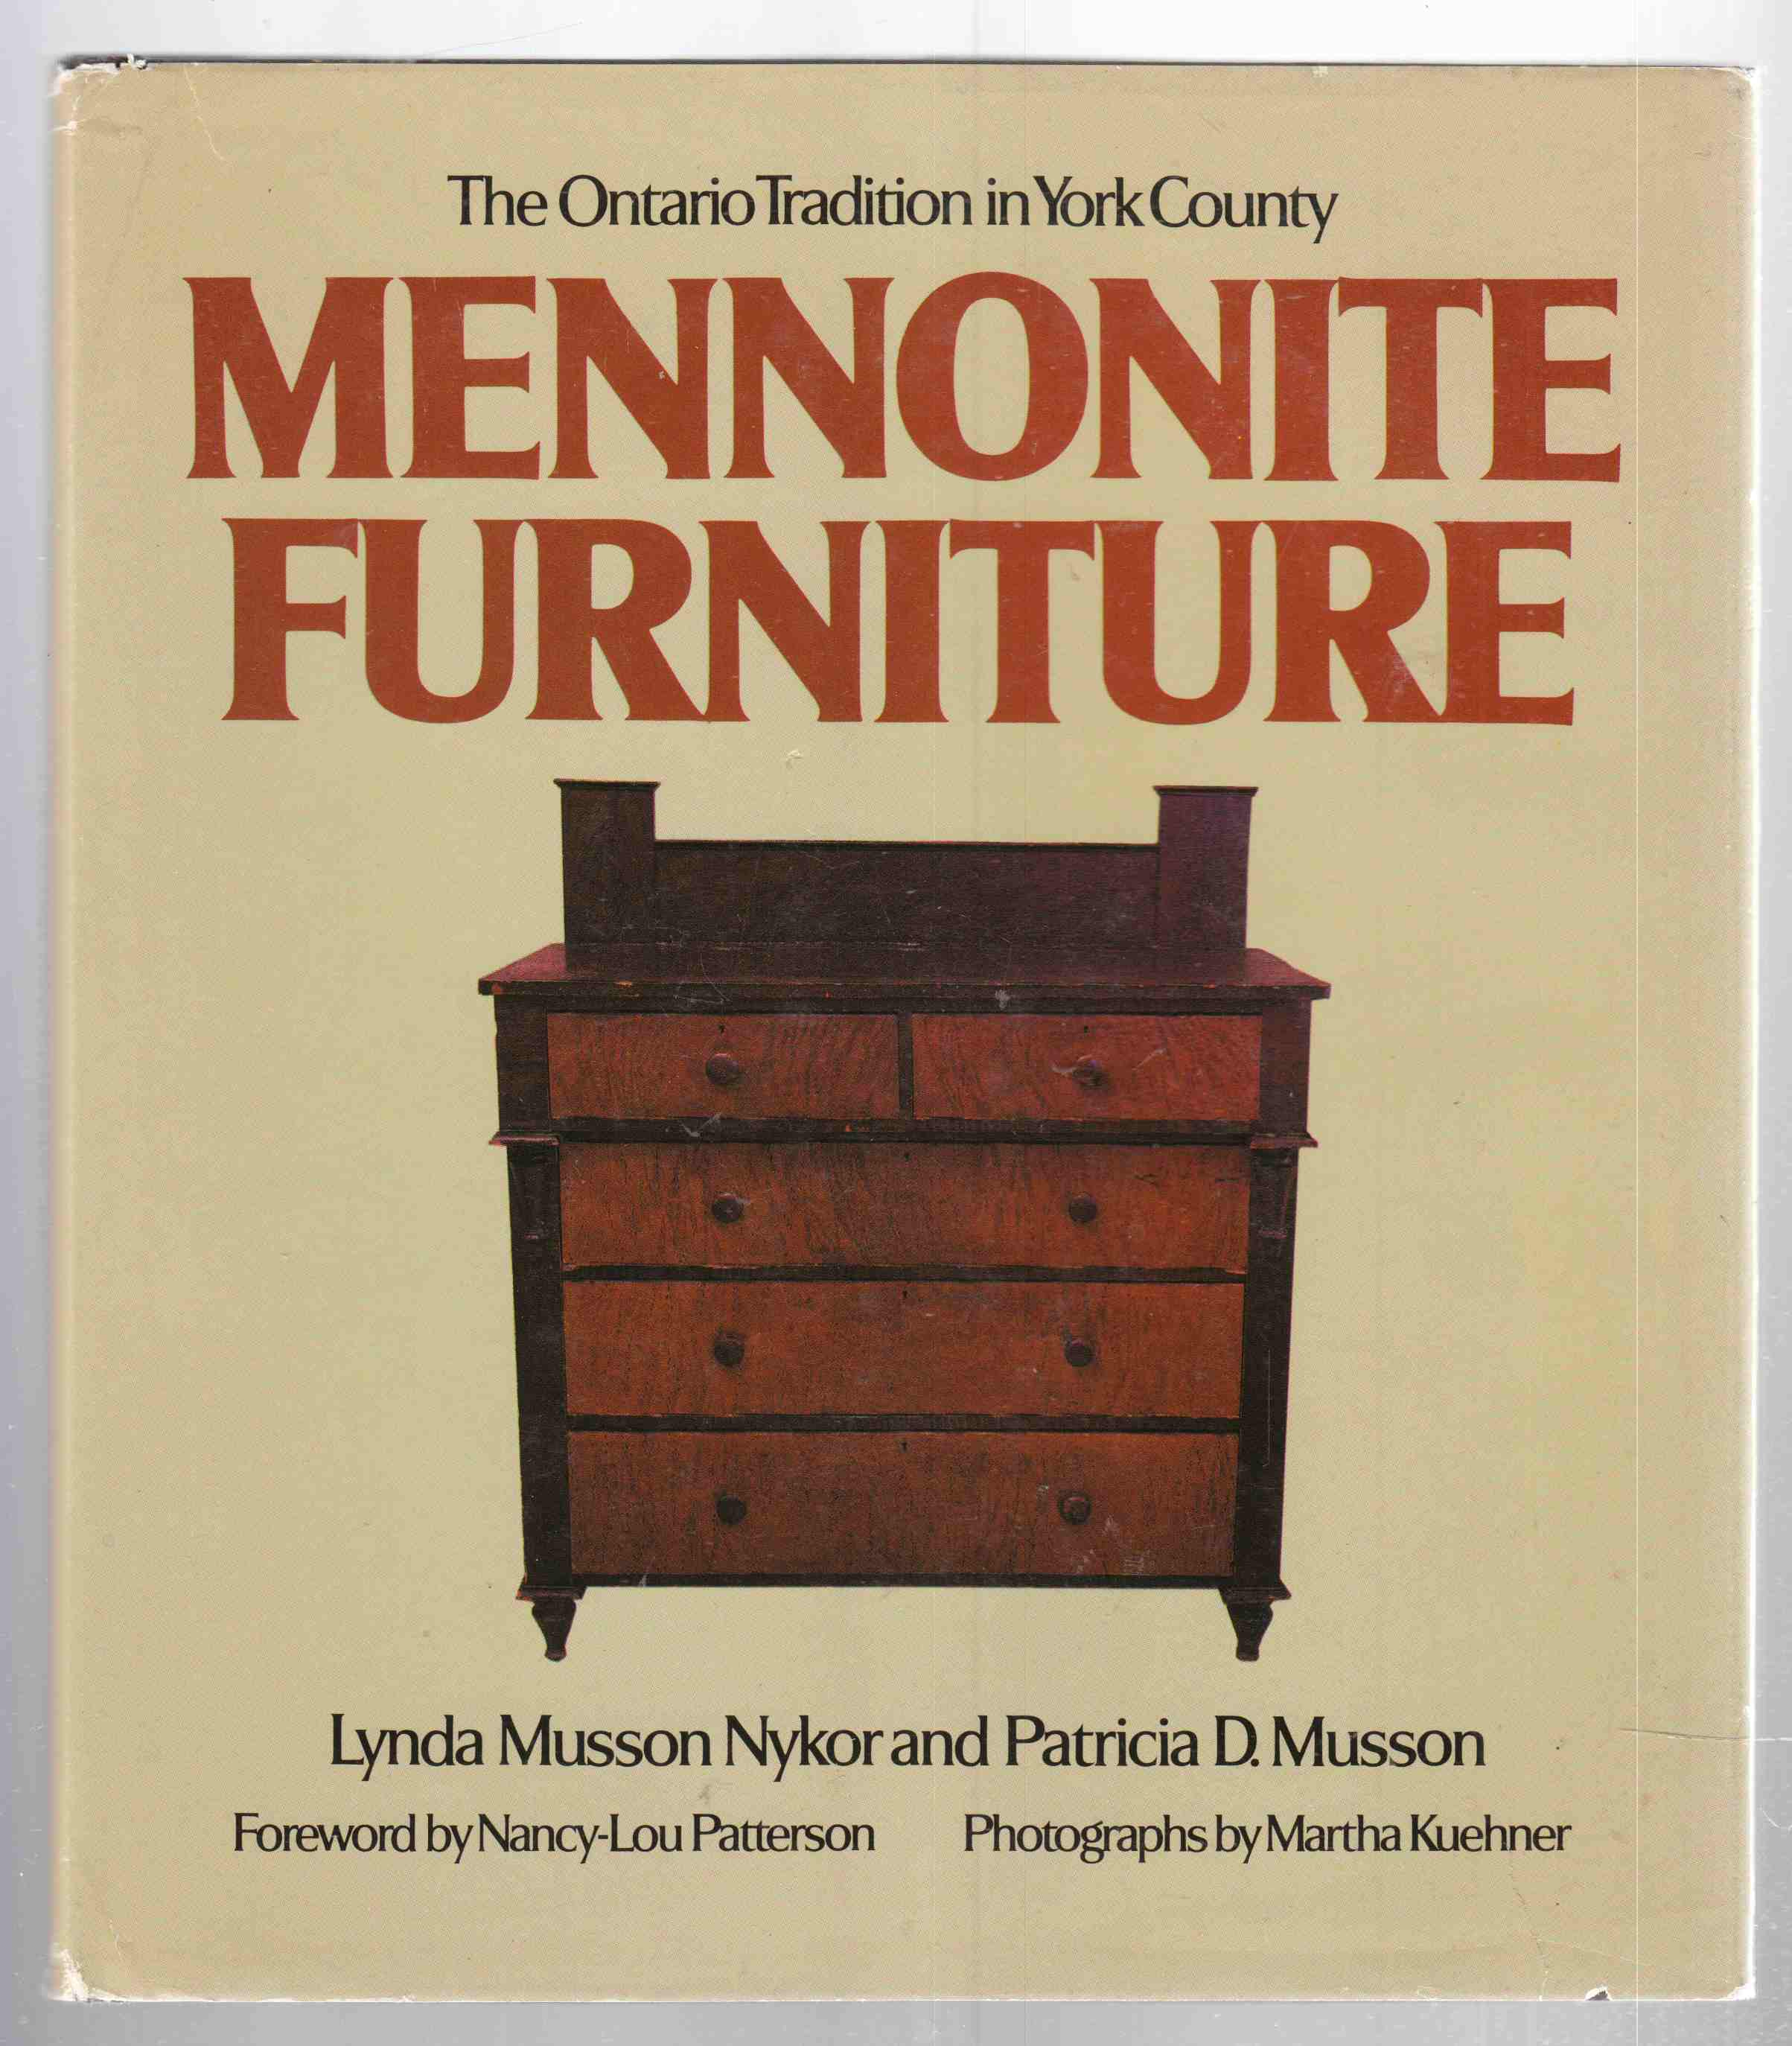 Image for Mennonite Furniture The Ontario Tradition in York County